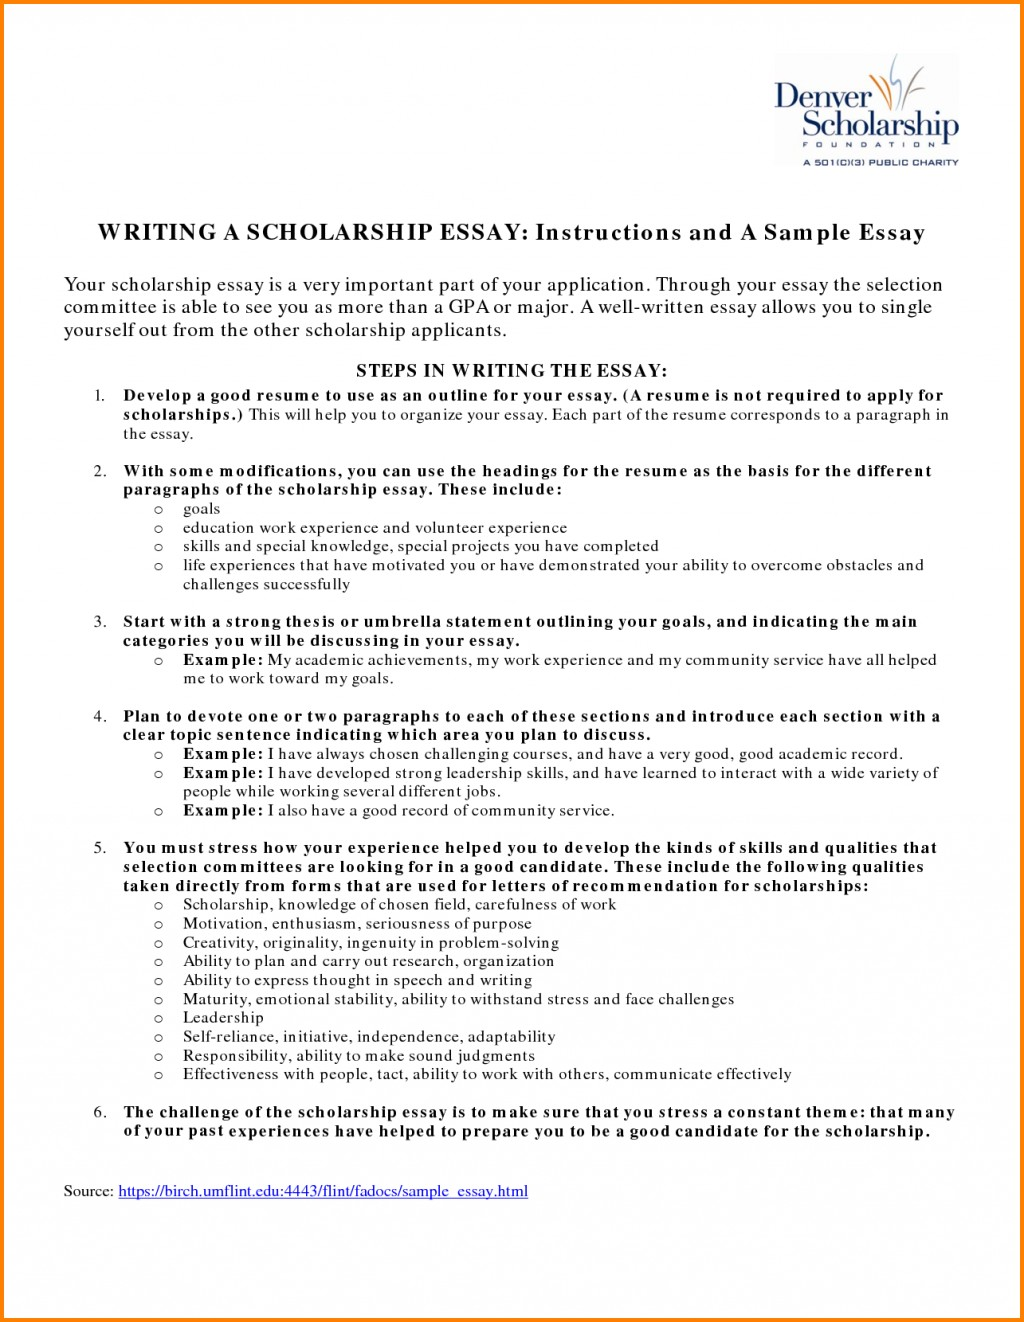 009 Essay Example Fair Resume Examples For Scholarships In Scholarship Sample Of Awful Essays Masters On Financial Need Large